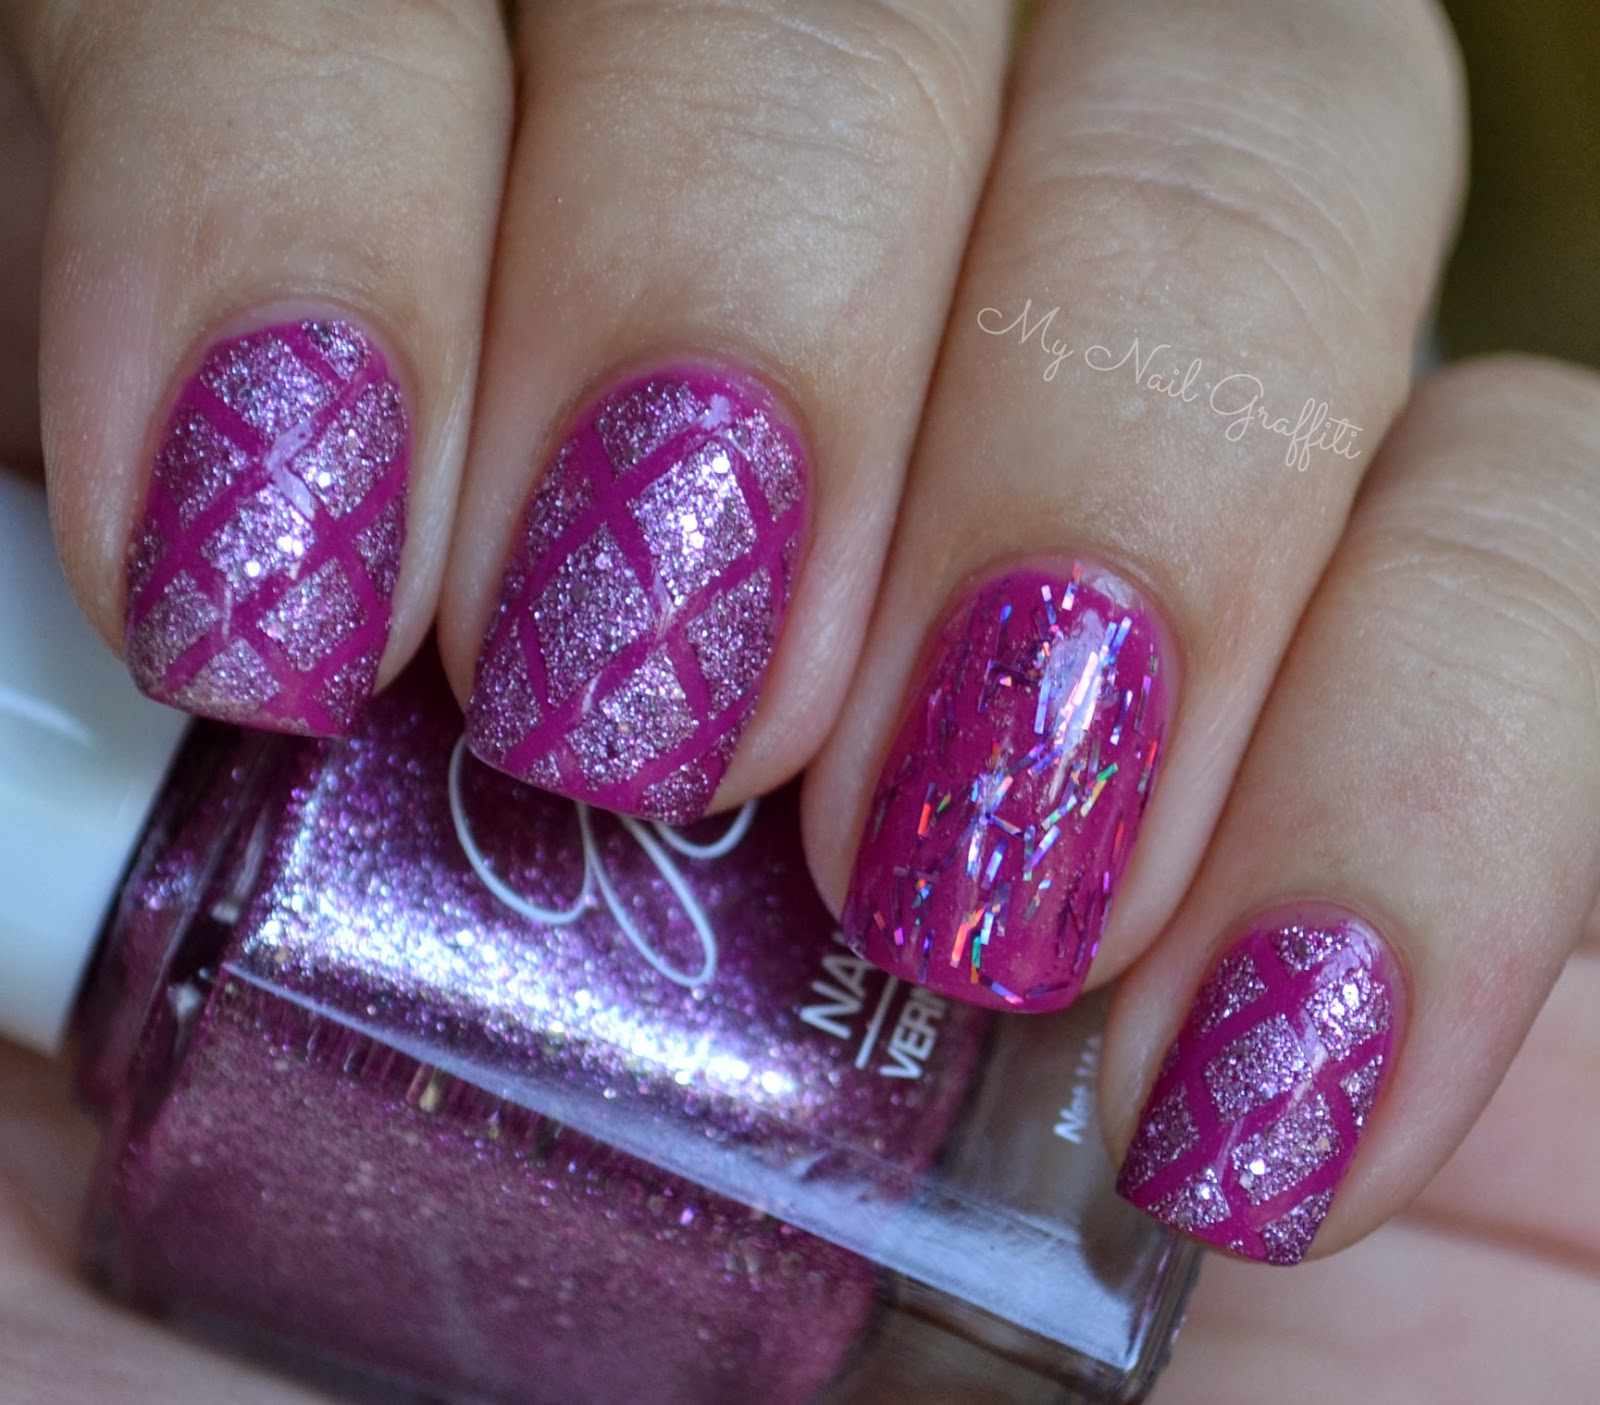 My Nail Graffiti Essie The Girls Are Out Julie G Crushed Candy